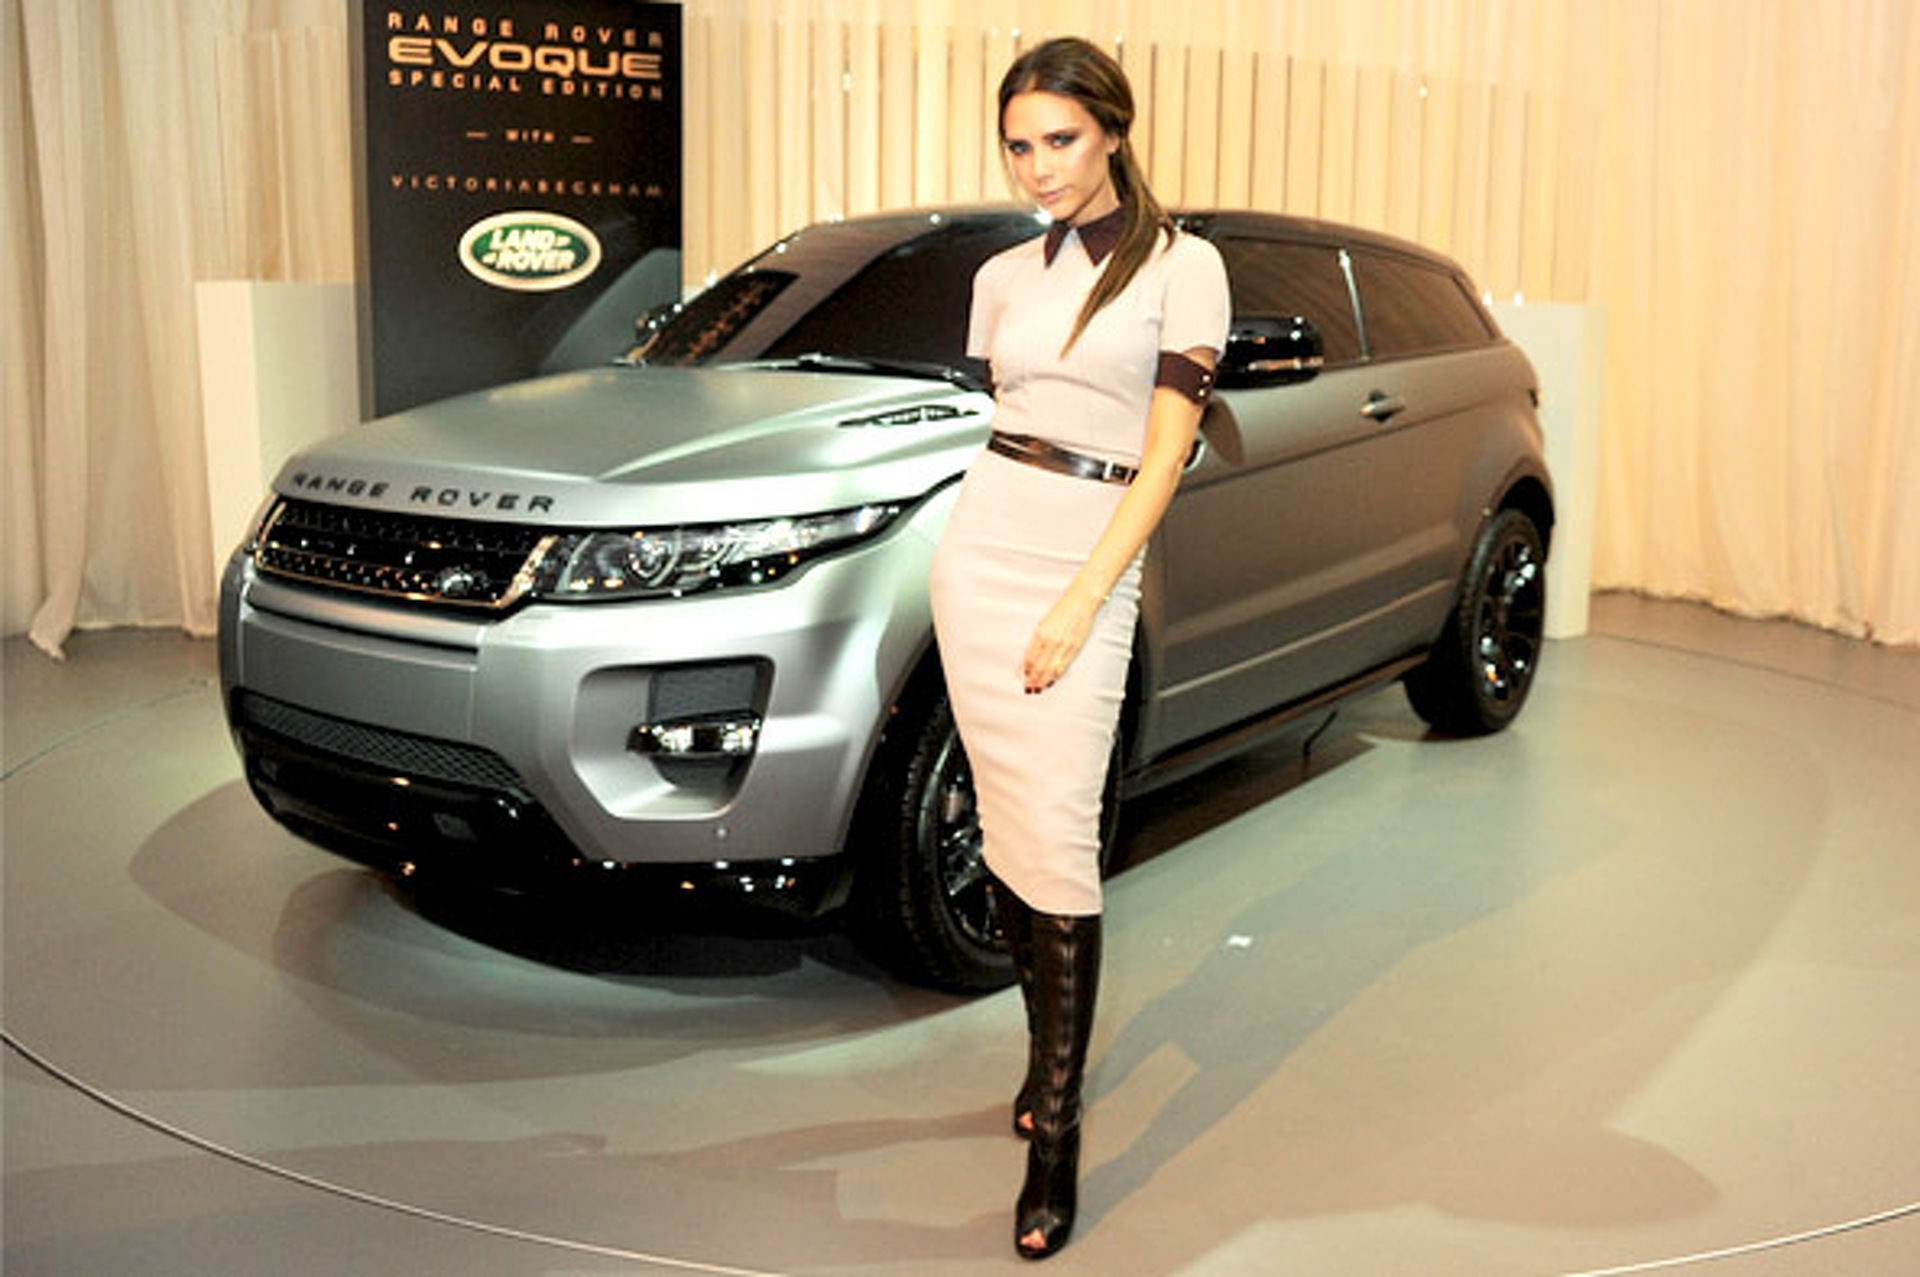 Celebrity Cars: Hollywood Stars Who Drive Hot Cars